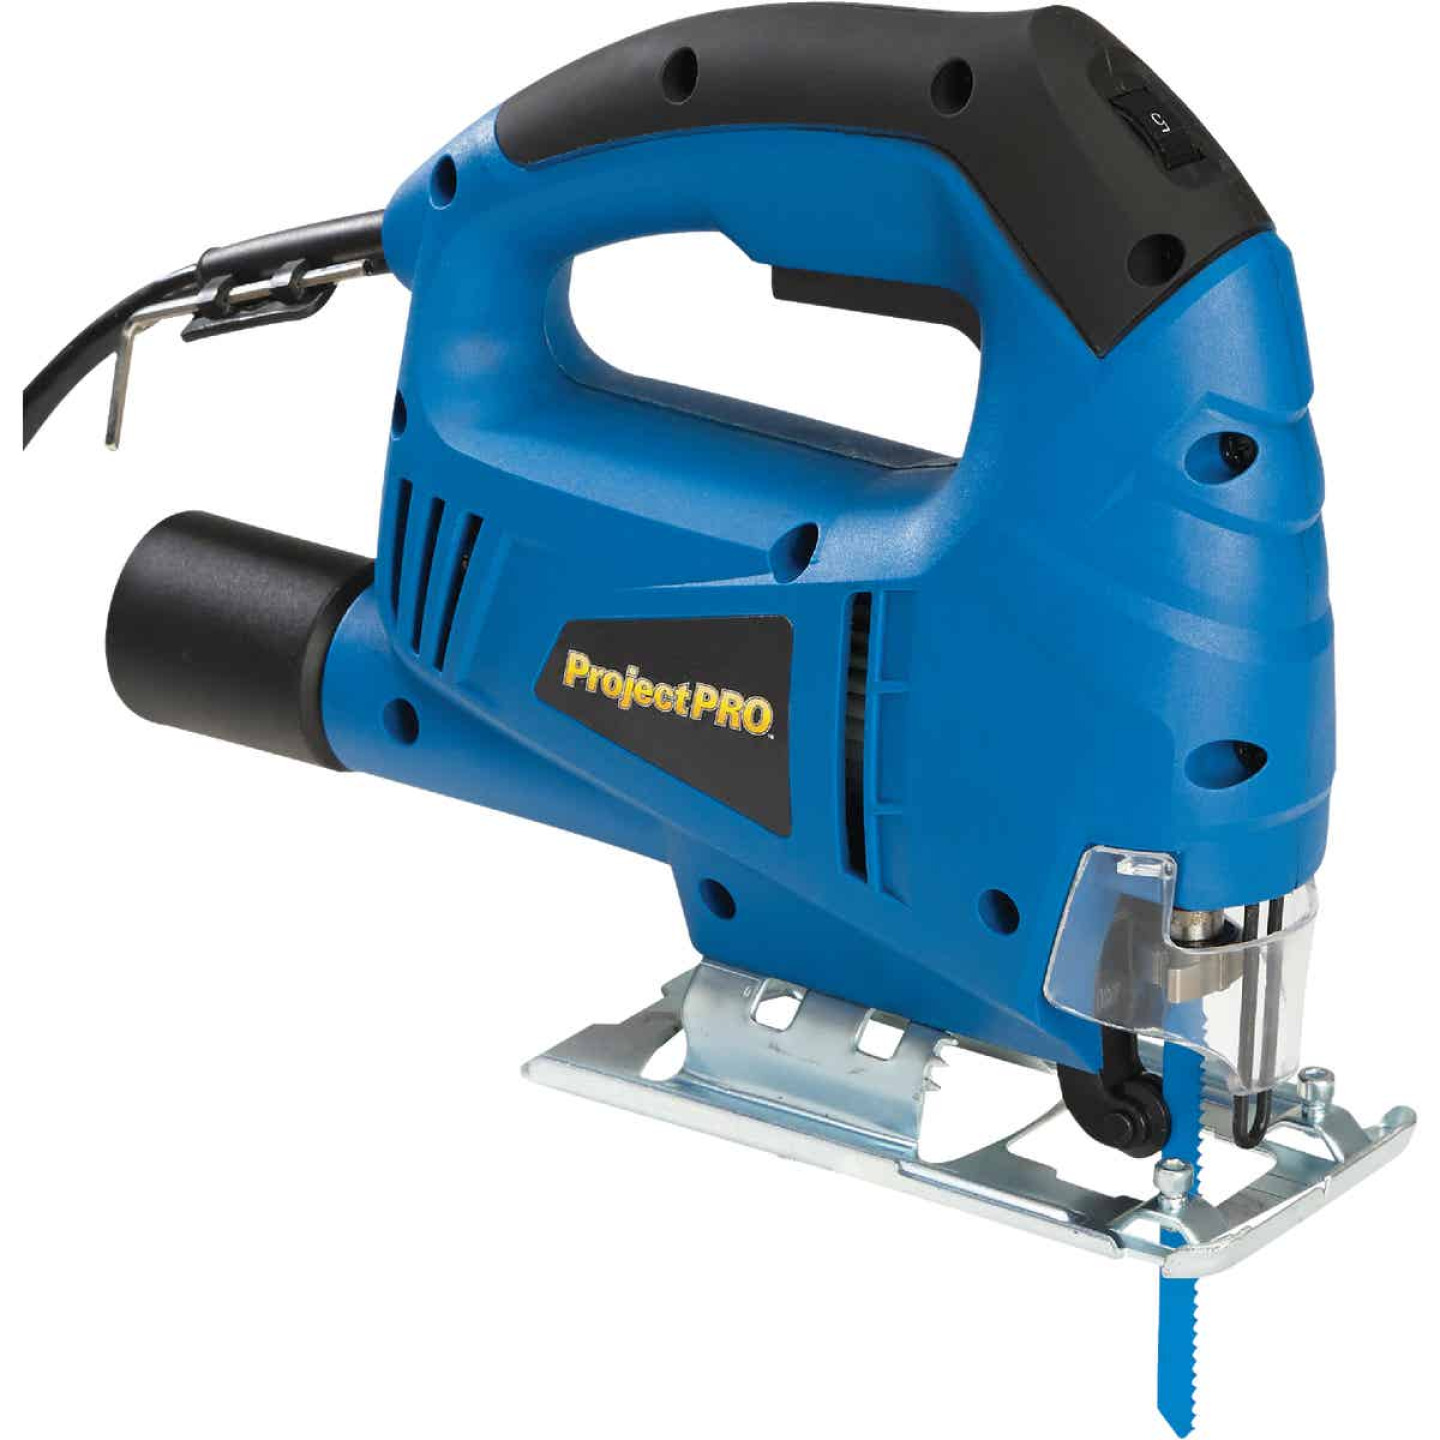 Project Pro 4.5A 0-3000 SPM Speed Jig Saw Image 1